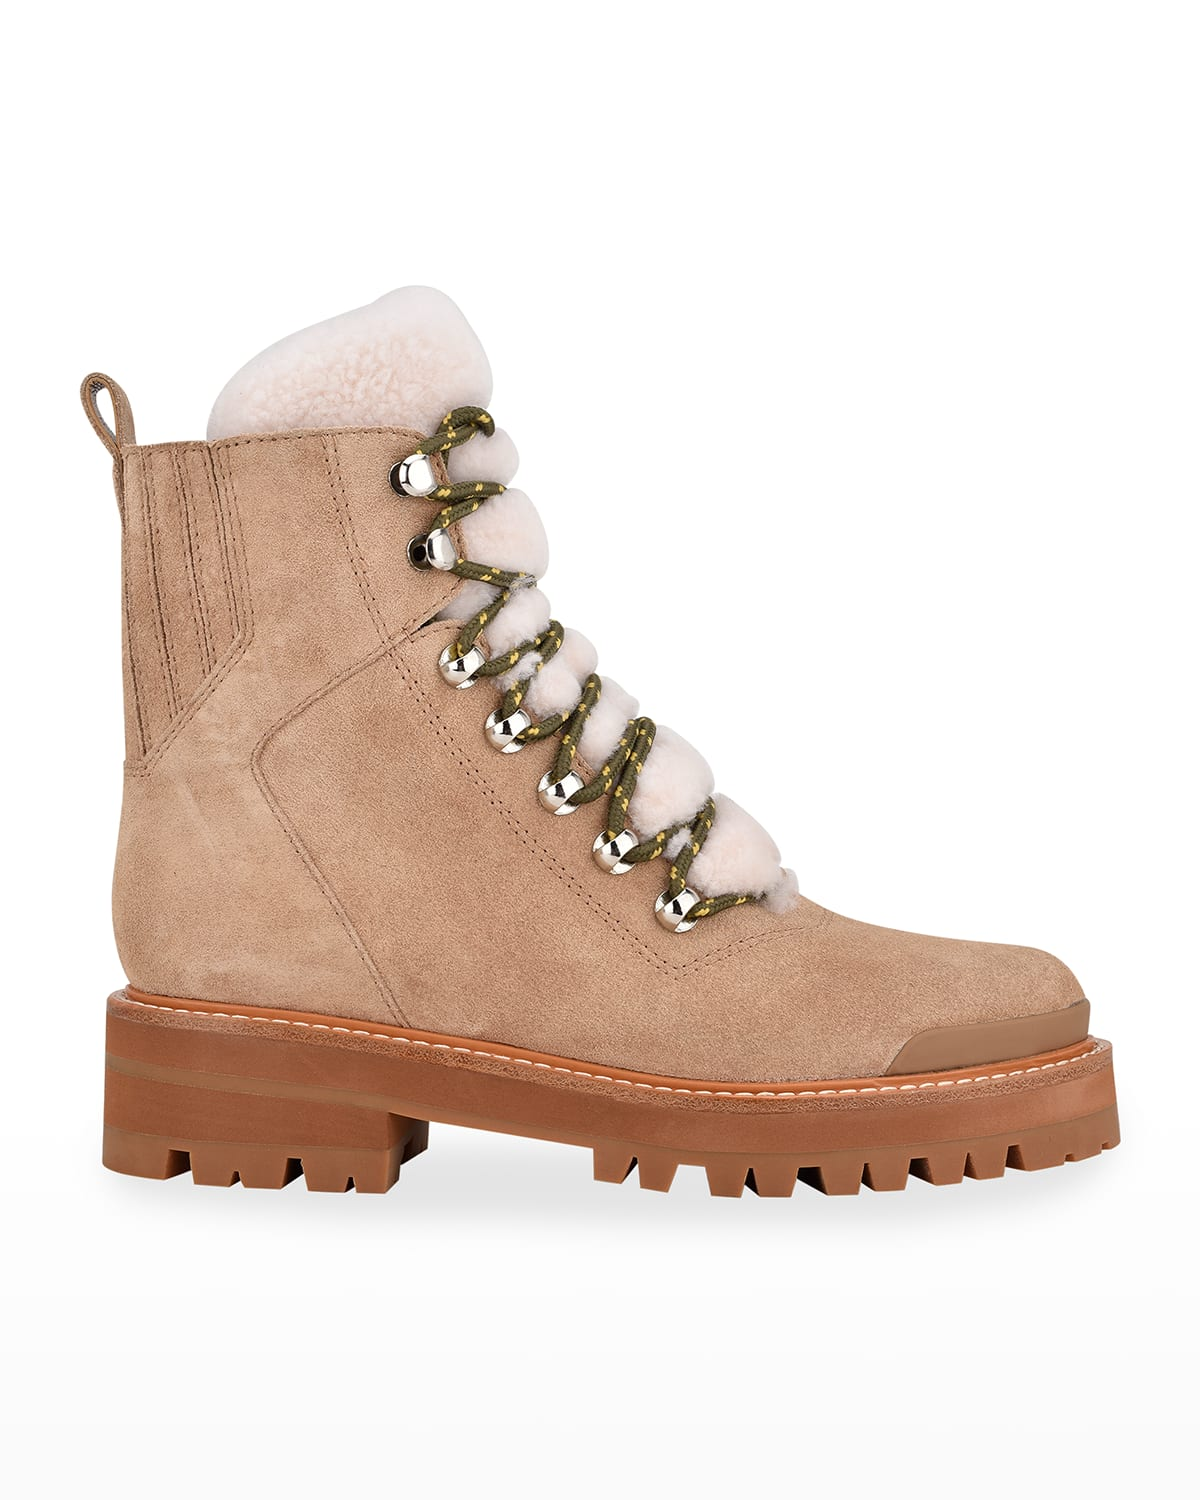 Lizzie Leather Shearling Winter Booties